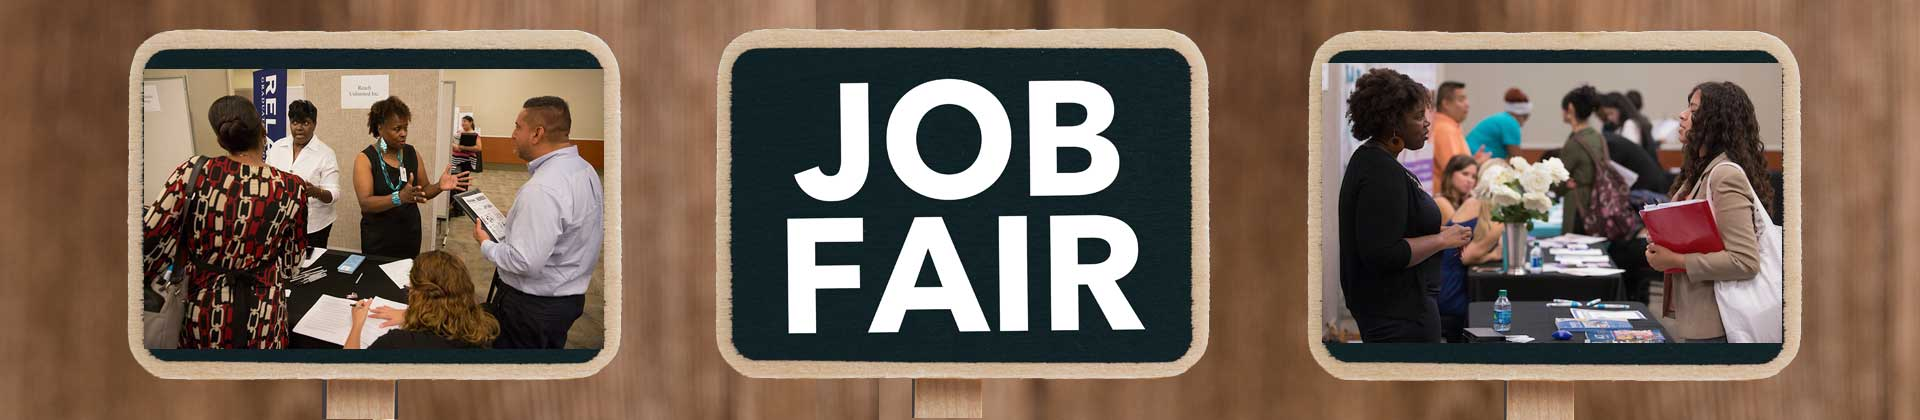 Employers pics posted on signs and sign saying Job Fair